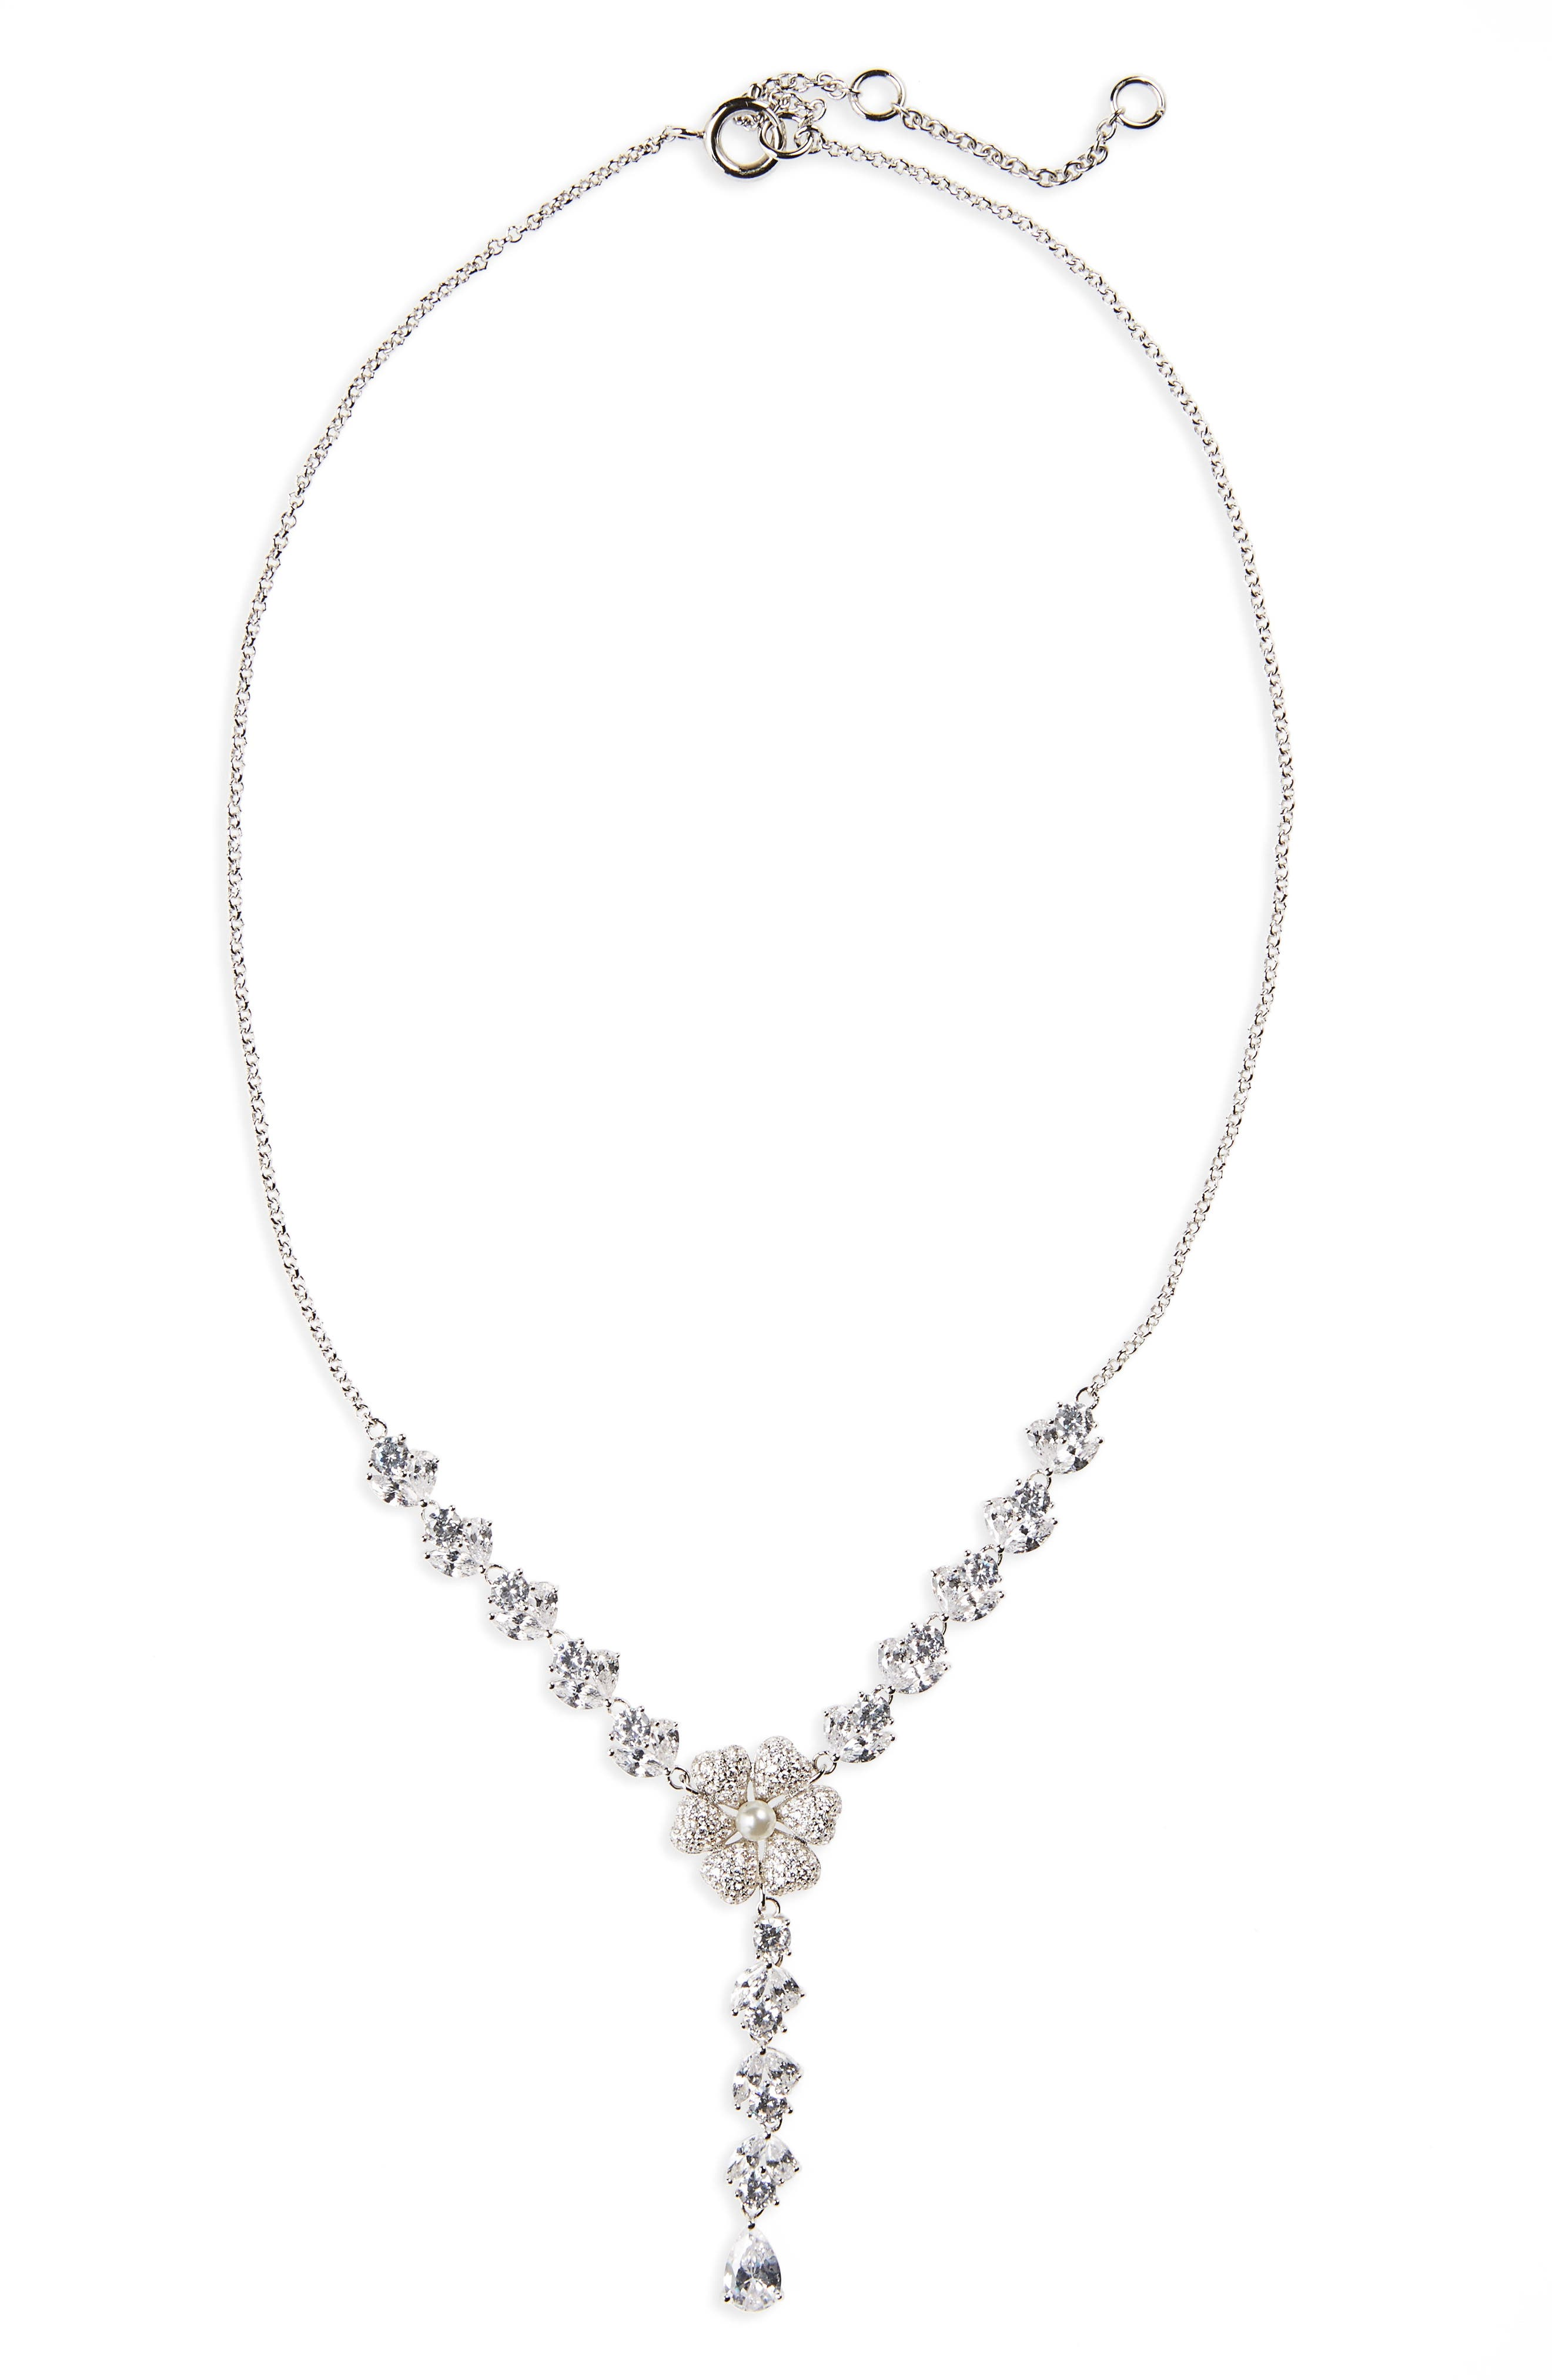 Swarovski Crystal & Imitation Pearl Flower Y-Necklace,                         Main,                         color, IVORY PEARL / SILVER